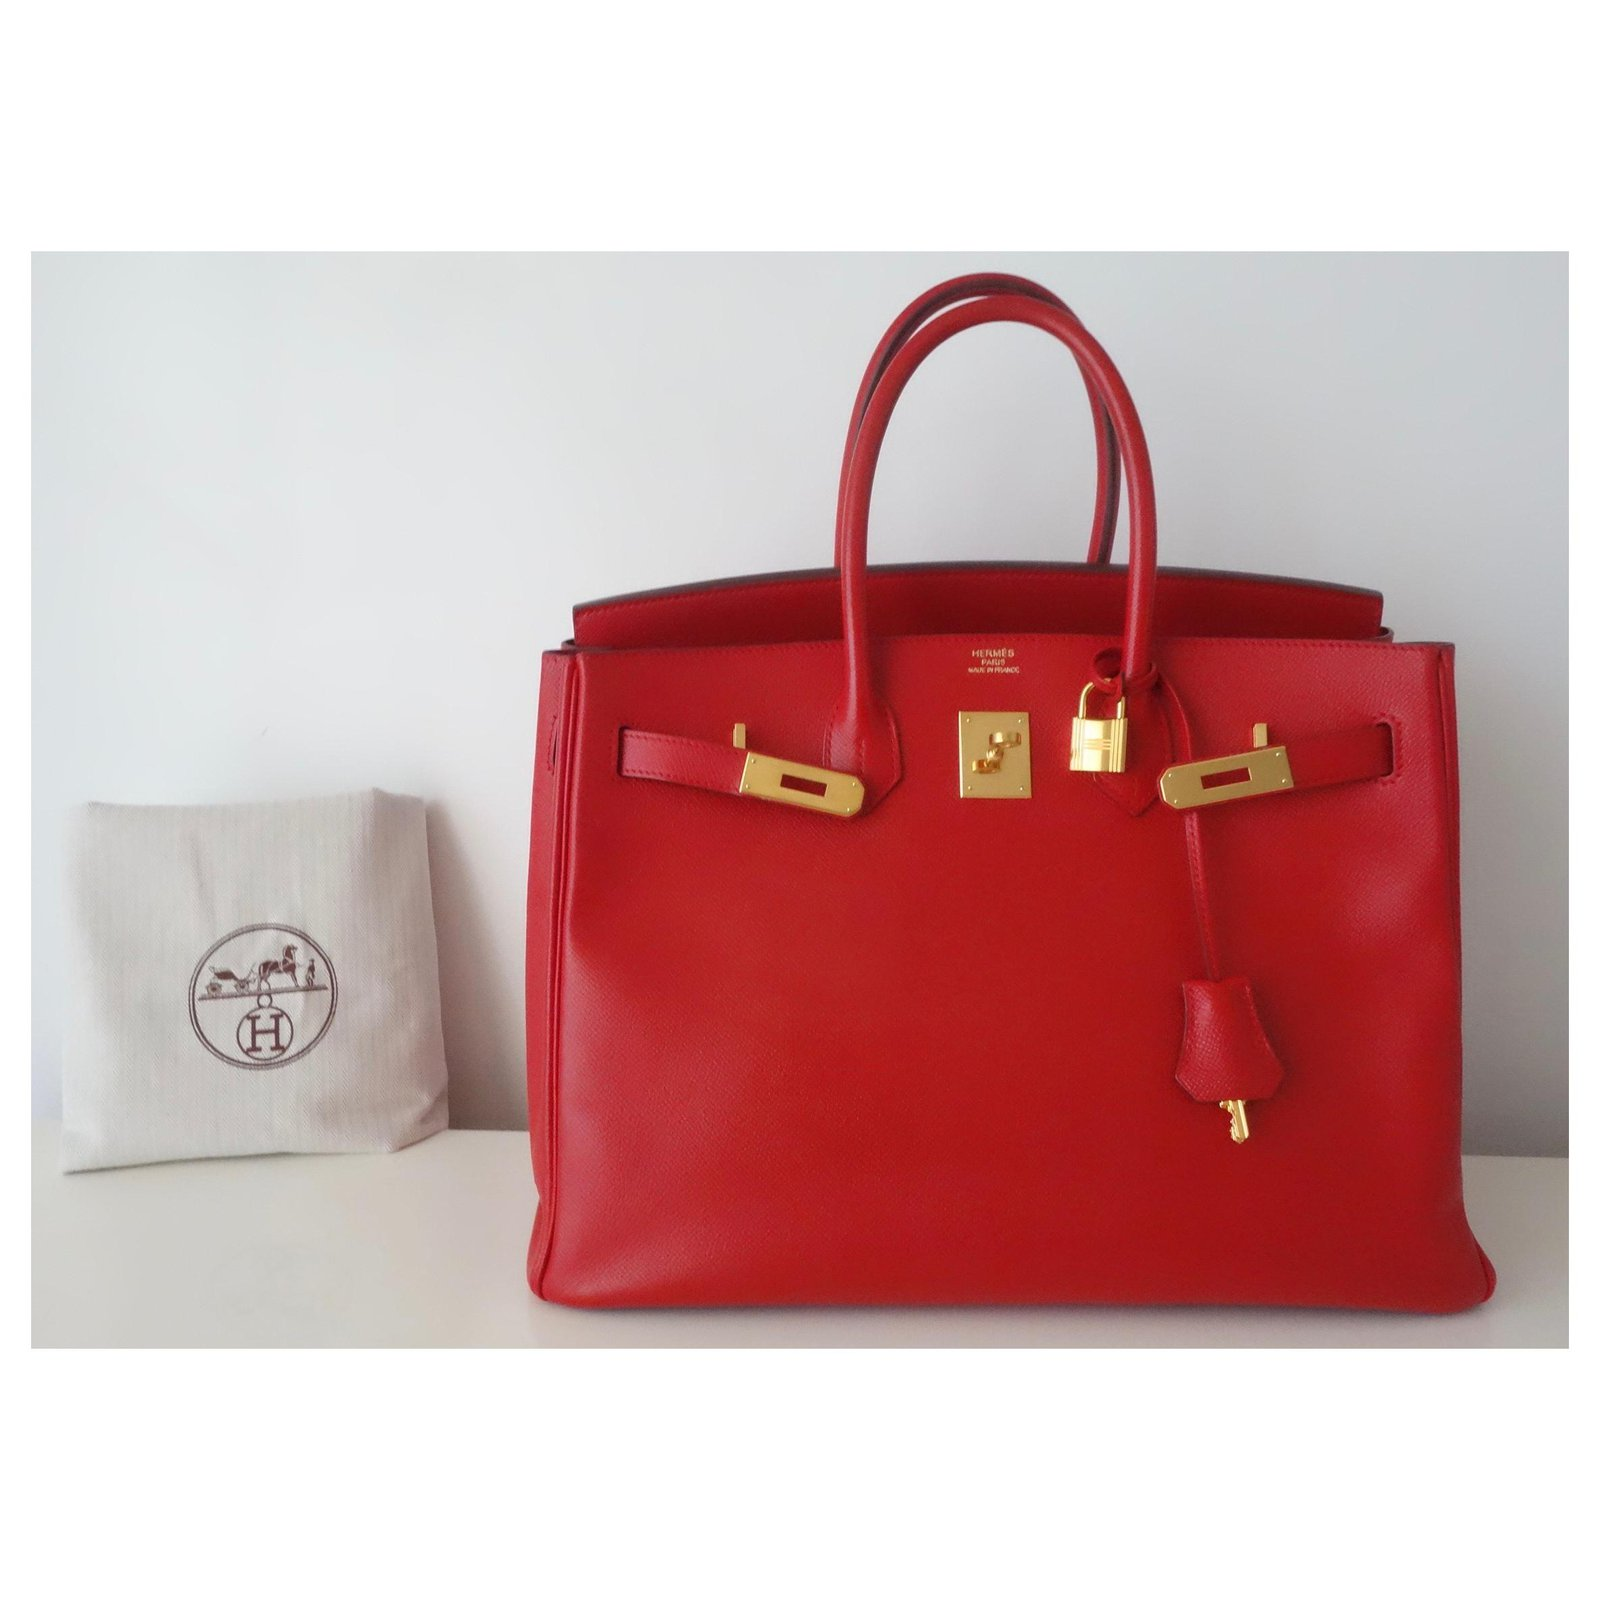 b4405f417a Hermès HERMES BIRKIN BAG 35 Red Handbags Leather Red ref.116429 ...